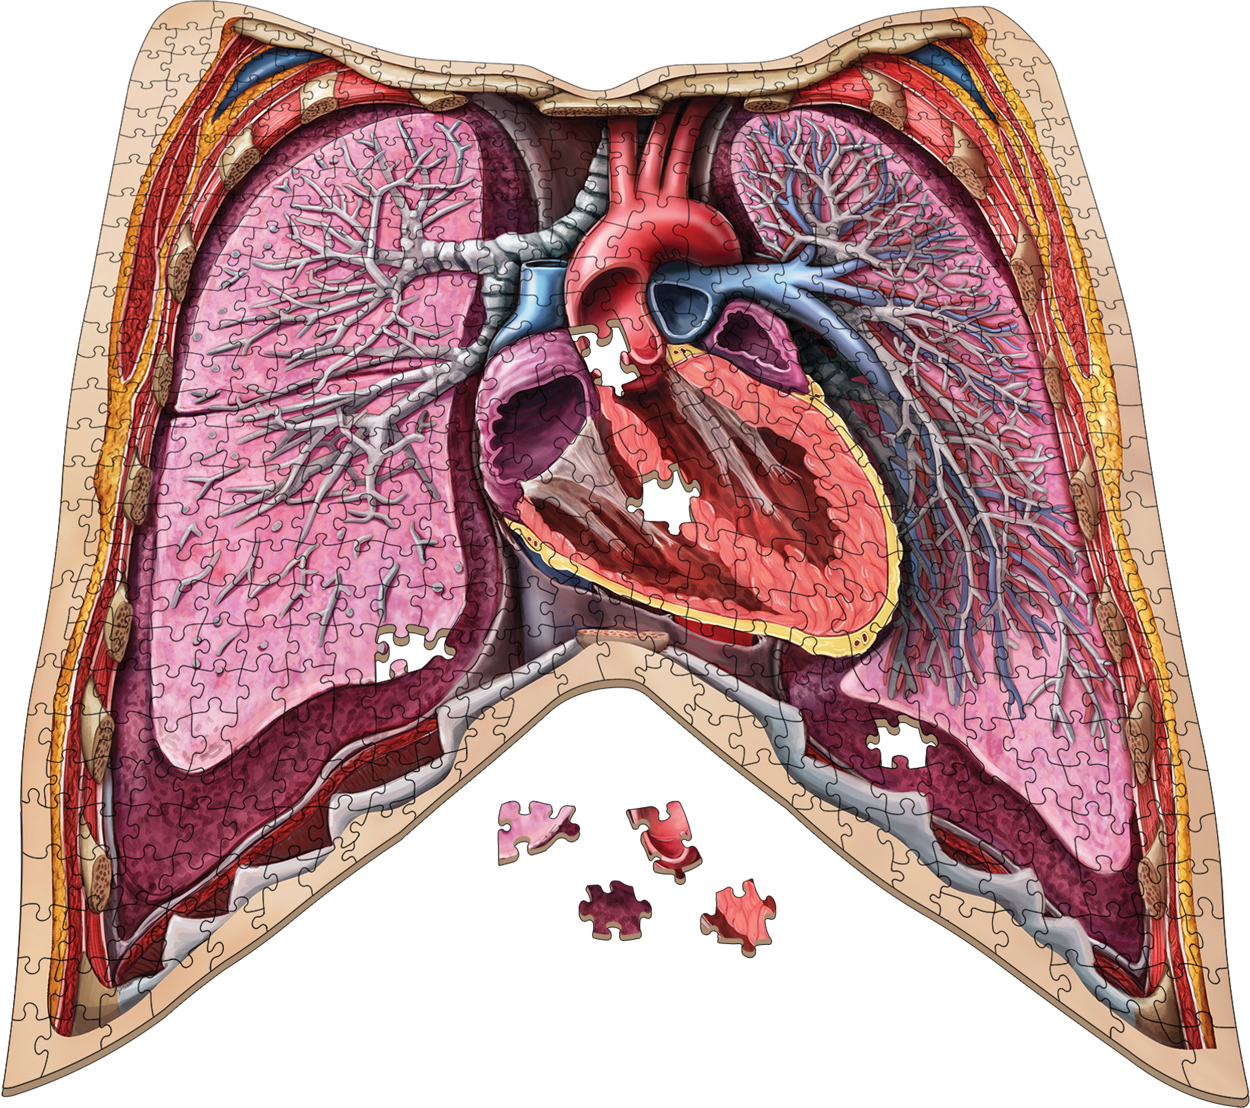 Dr. Livingston's Anatomy Jigsaw Puzzle: The Human Thorax Anatomy & Biology Shaped Puzzle